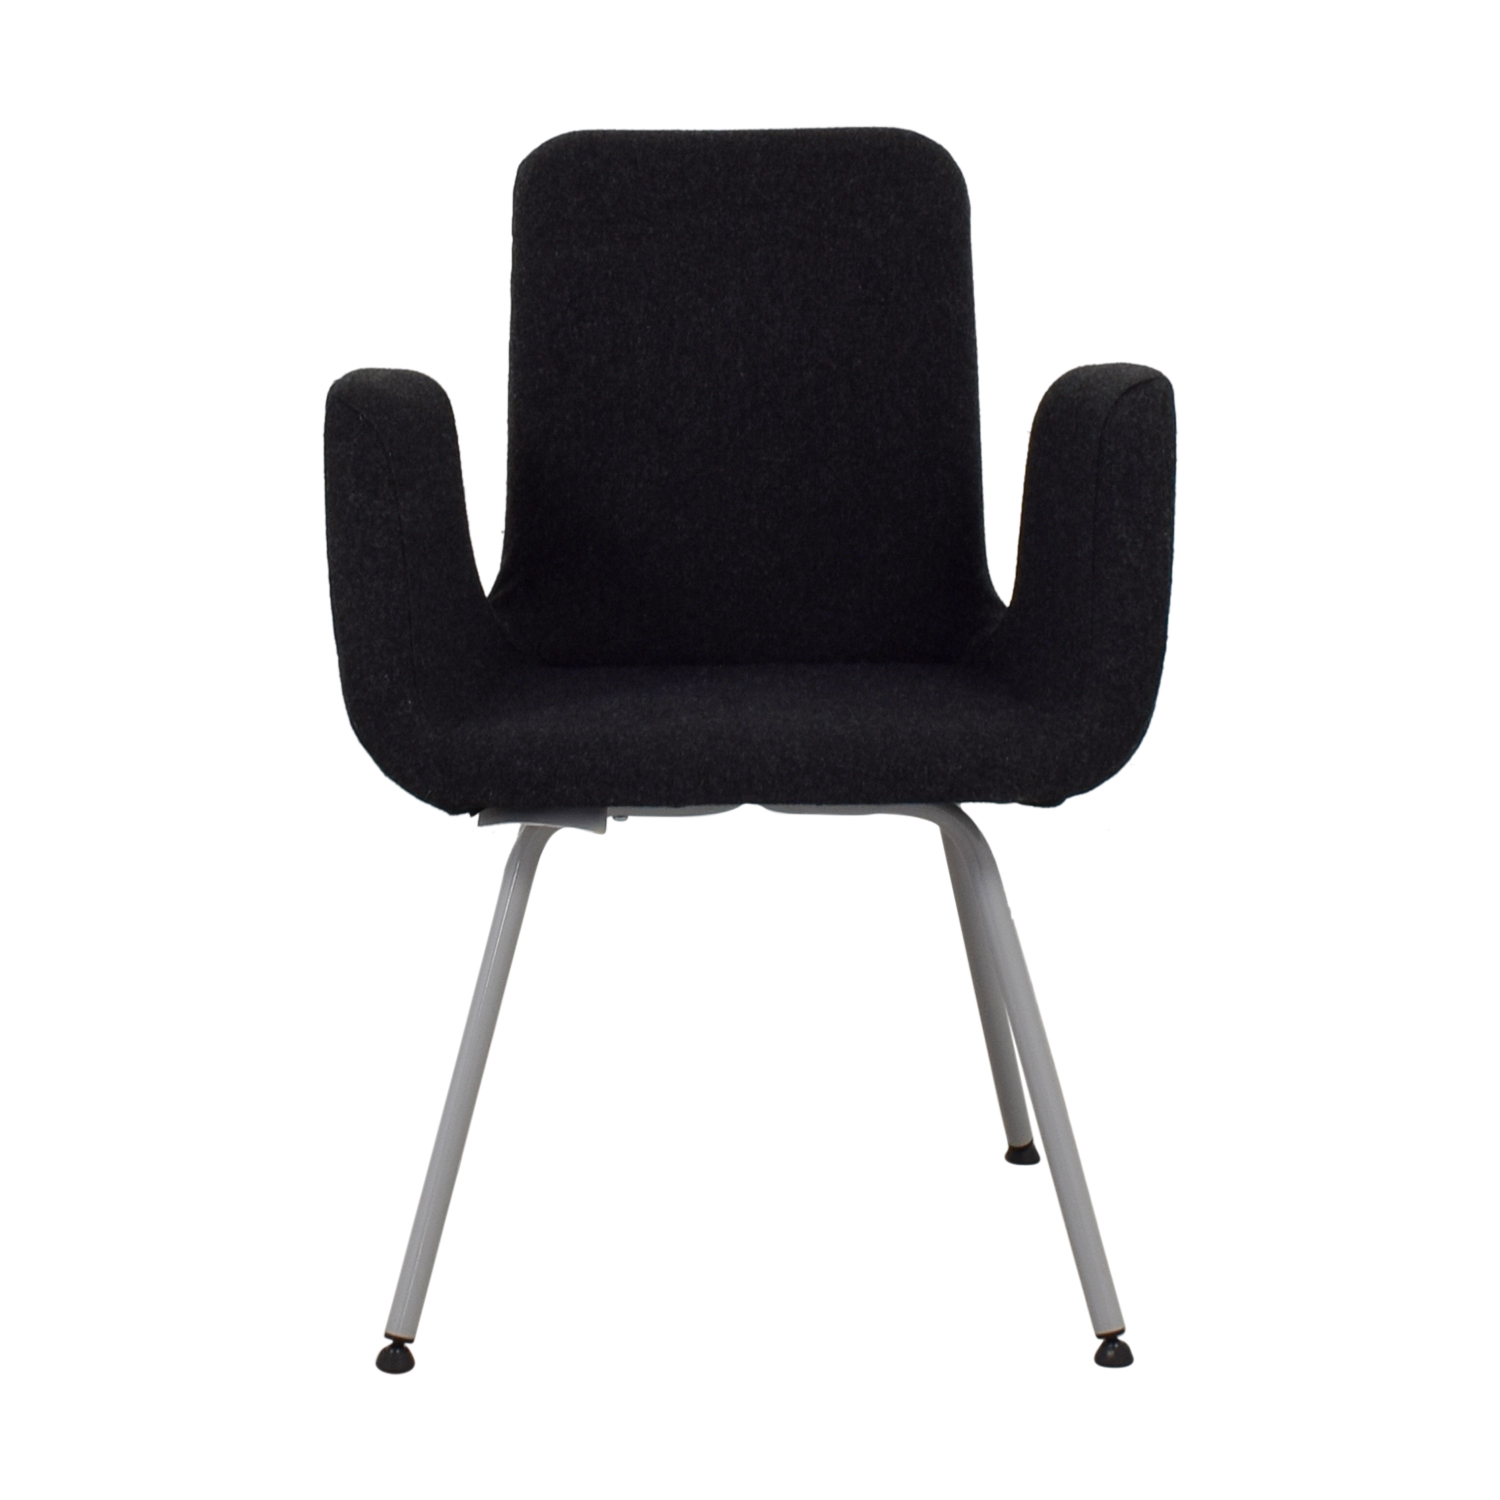 IKEA Patrick Black Accent Chair / Accent Chairs